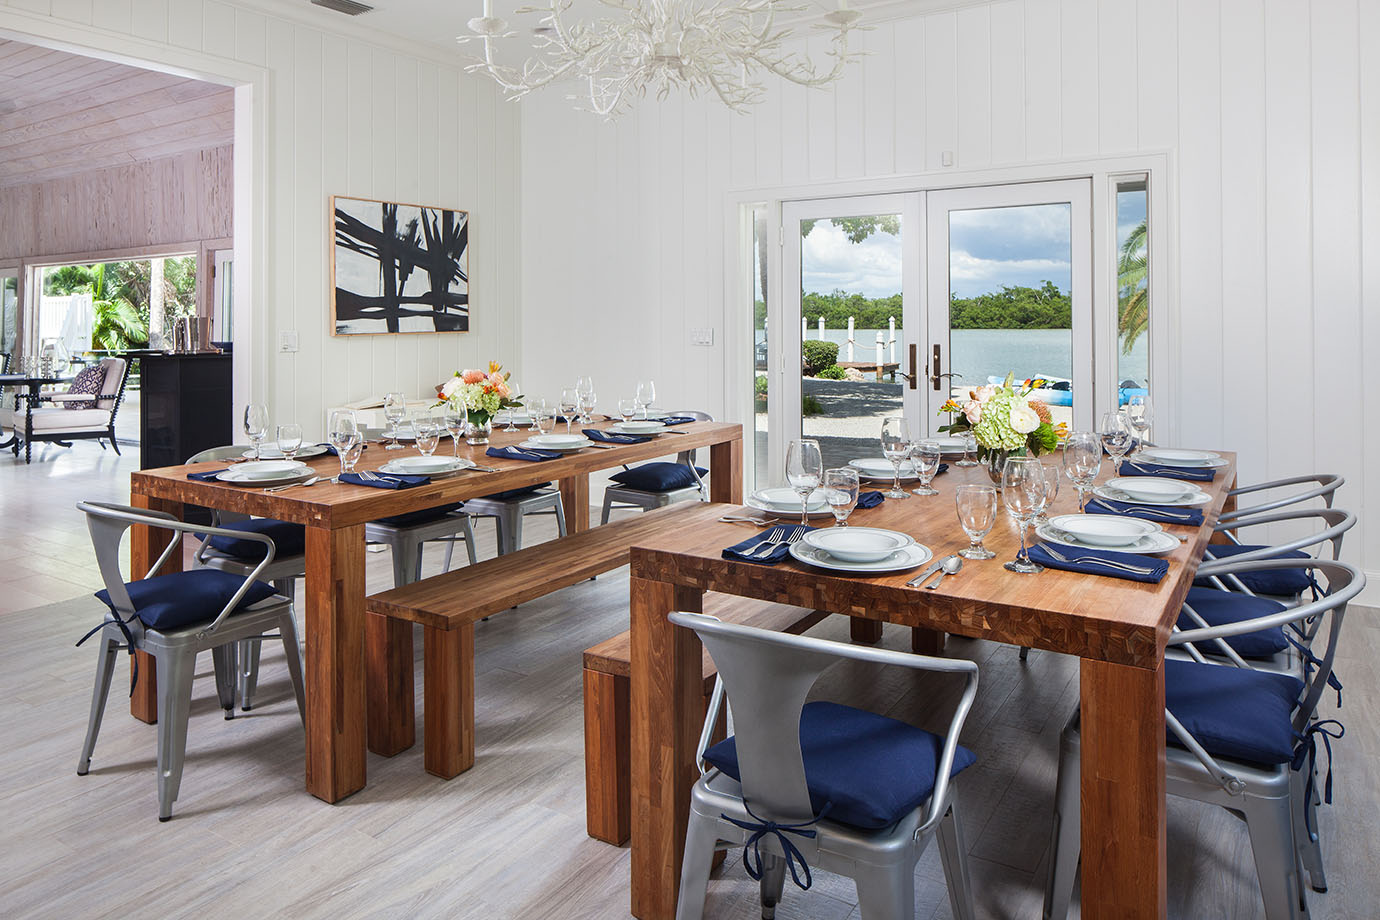 Two rectangular dining tables set with dinnerware, water and wine glasses with a bright colored bouquet of flowers in the center with silver gunmetal chairs with navy blue cushions